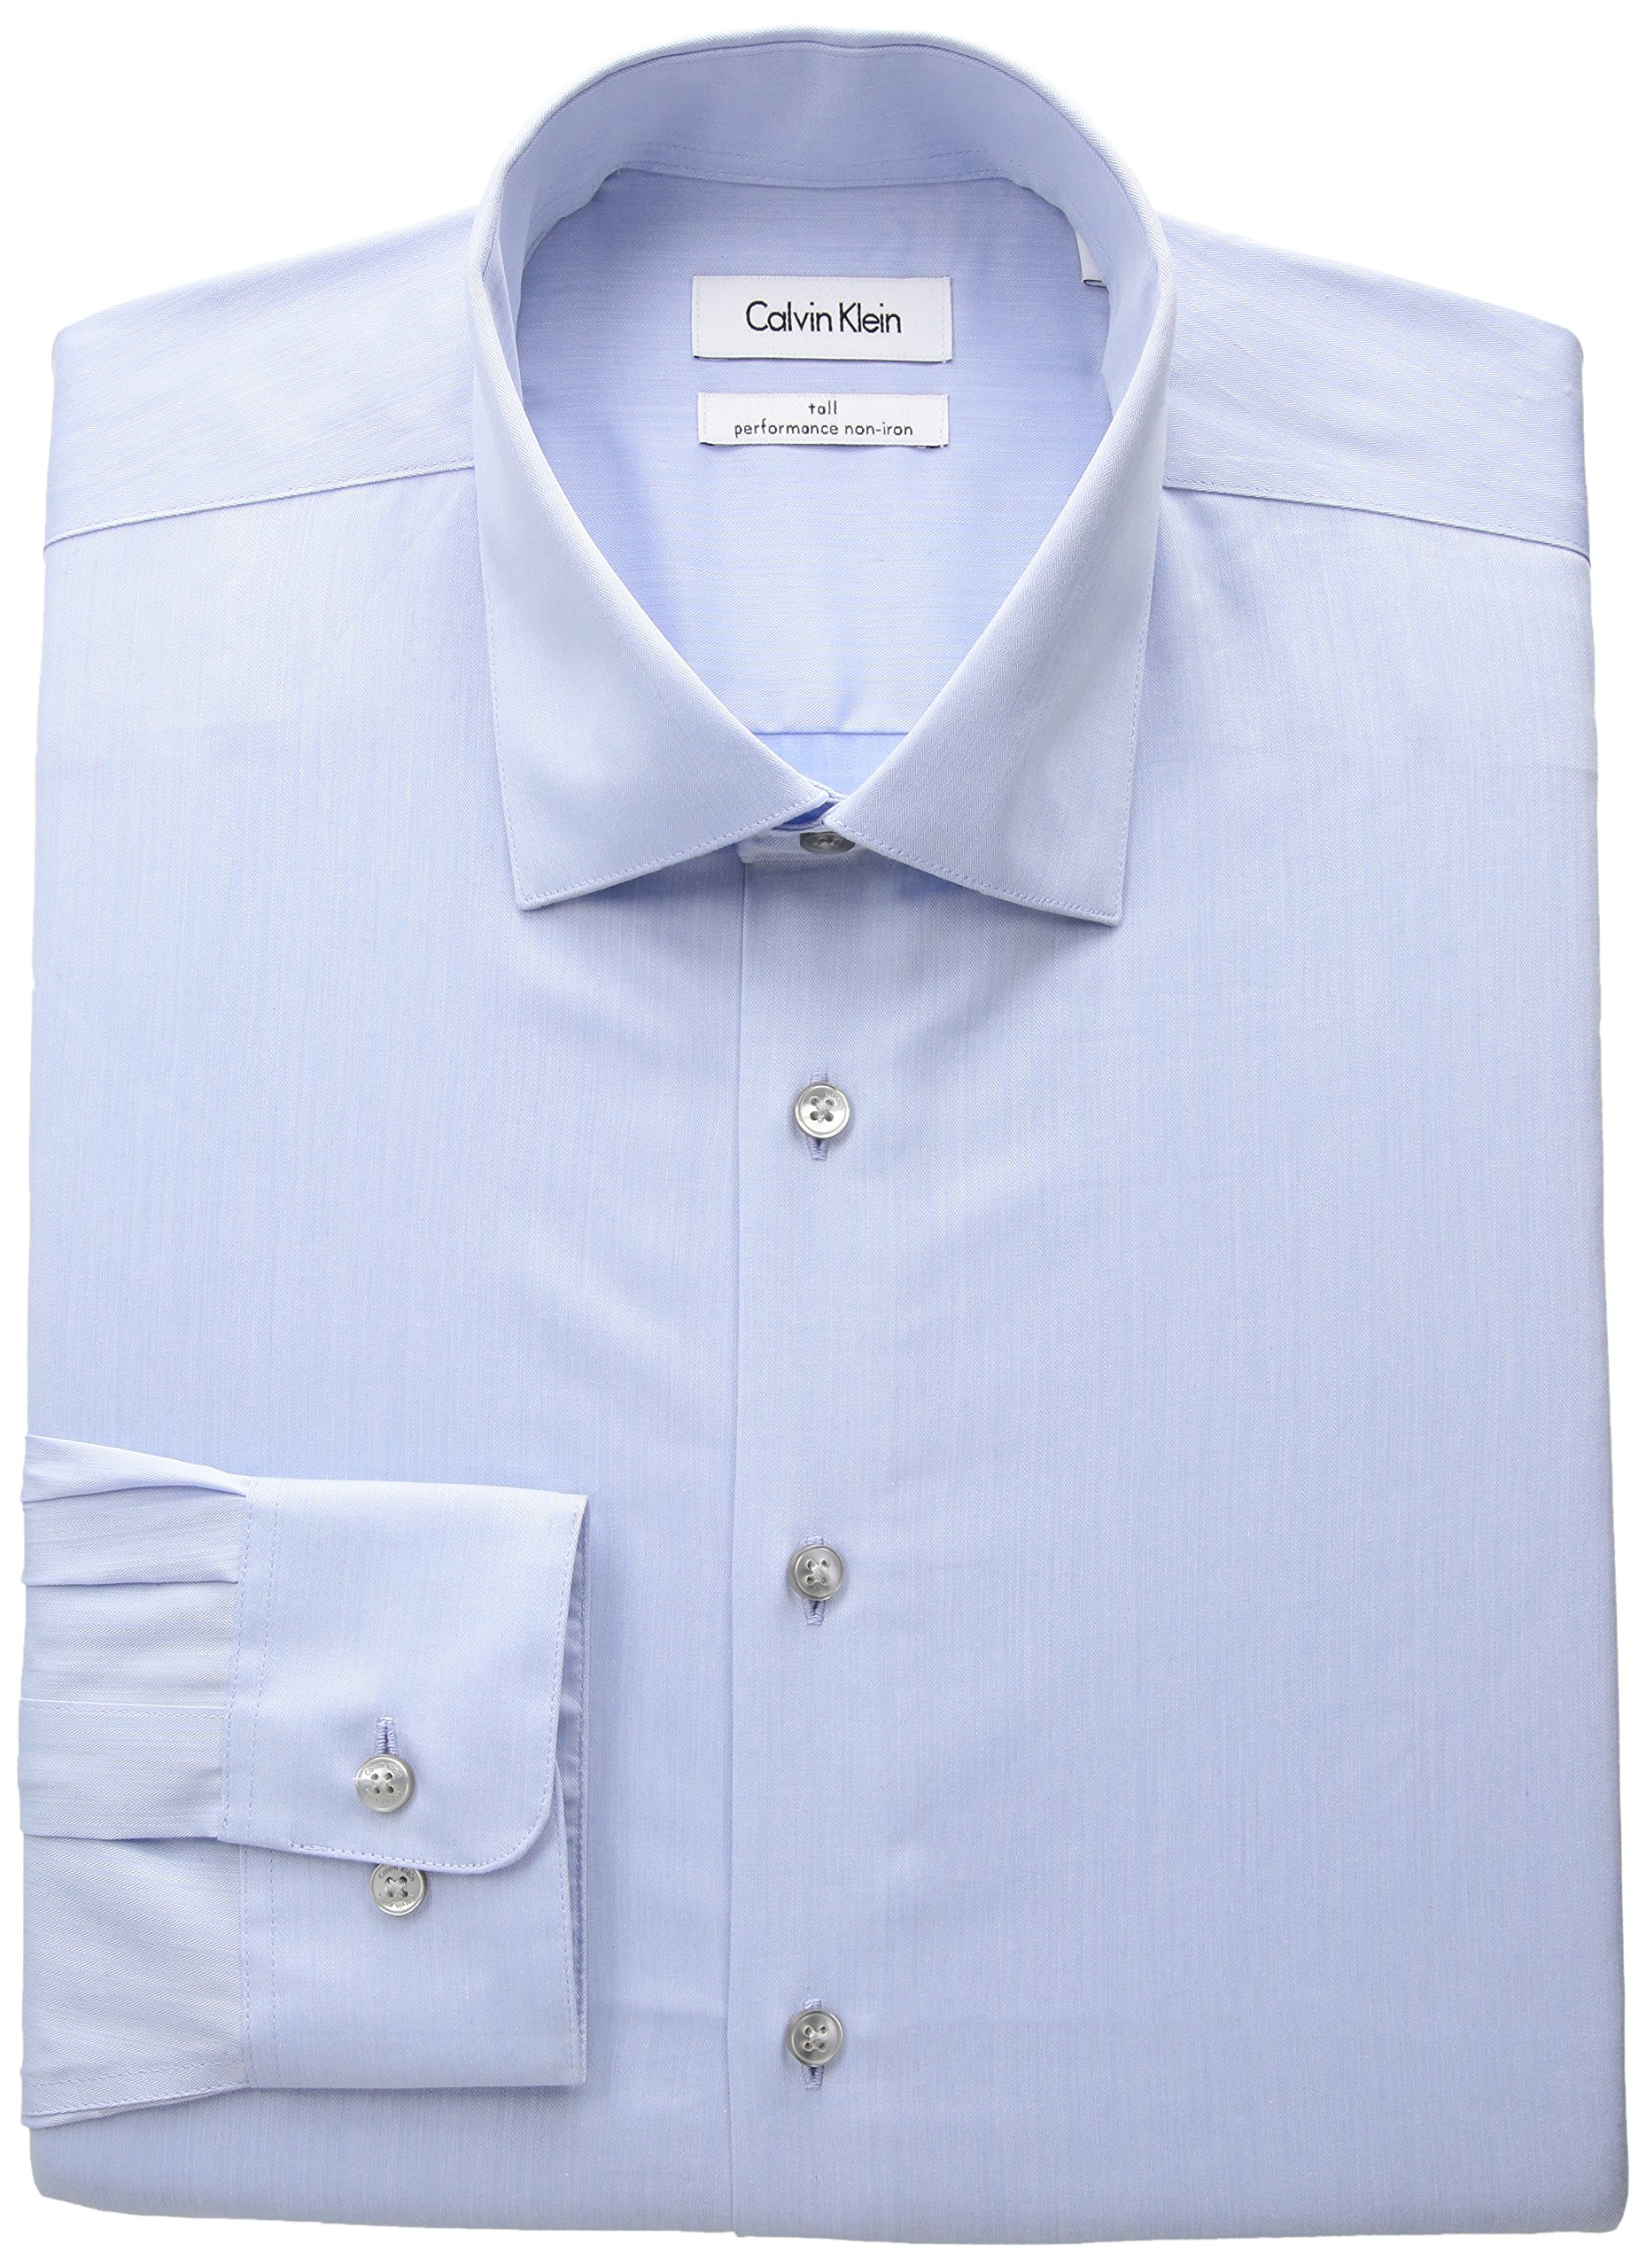 Calvin Klein Men's Big and Tall Non Iron Fit Herringbone Spread Collar Dress Shirt, Blue, 18.5'' Neck 35''-36'' Sleeve